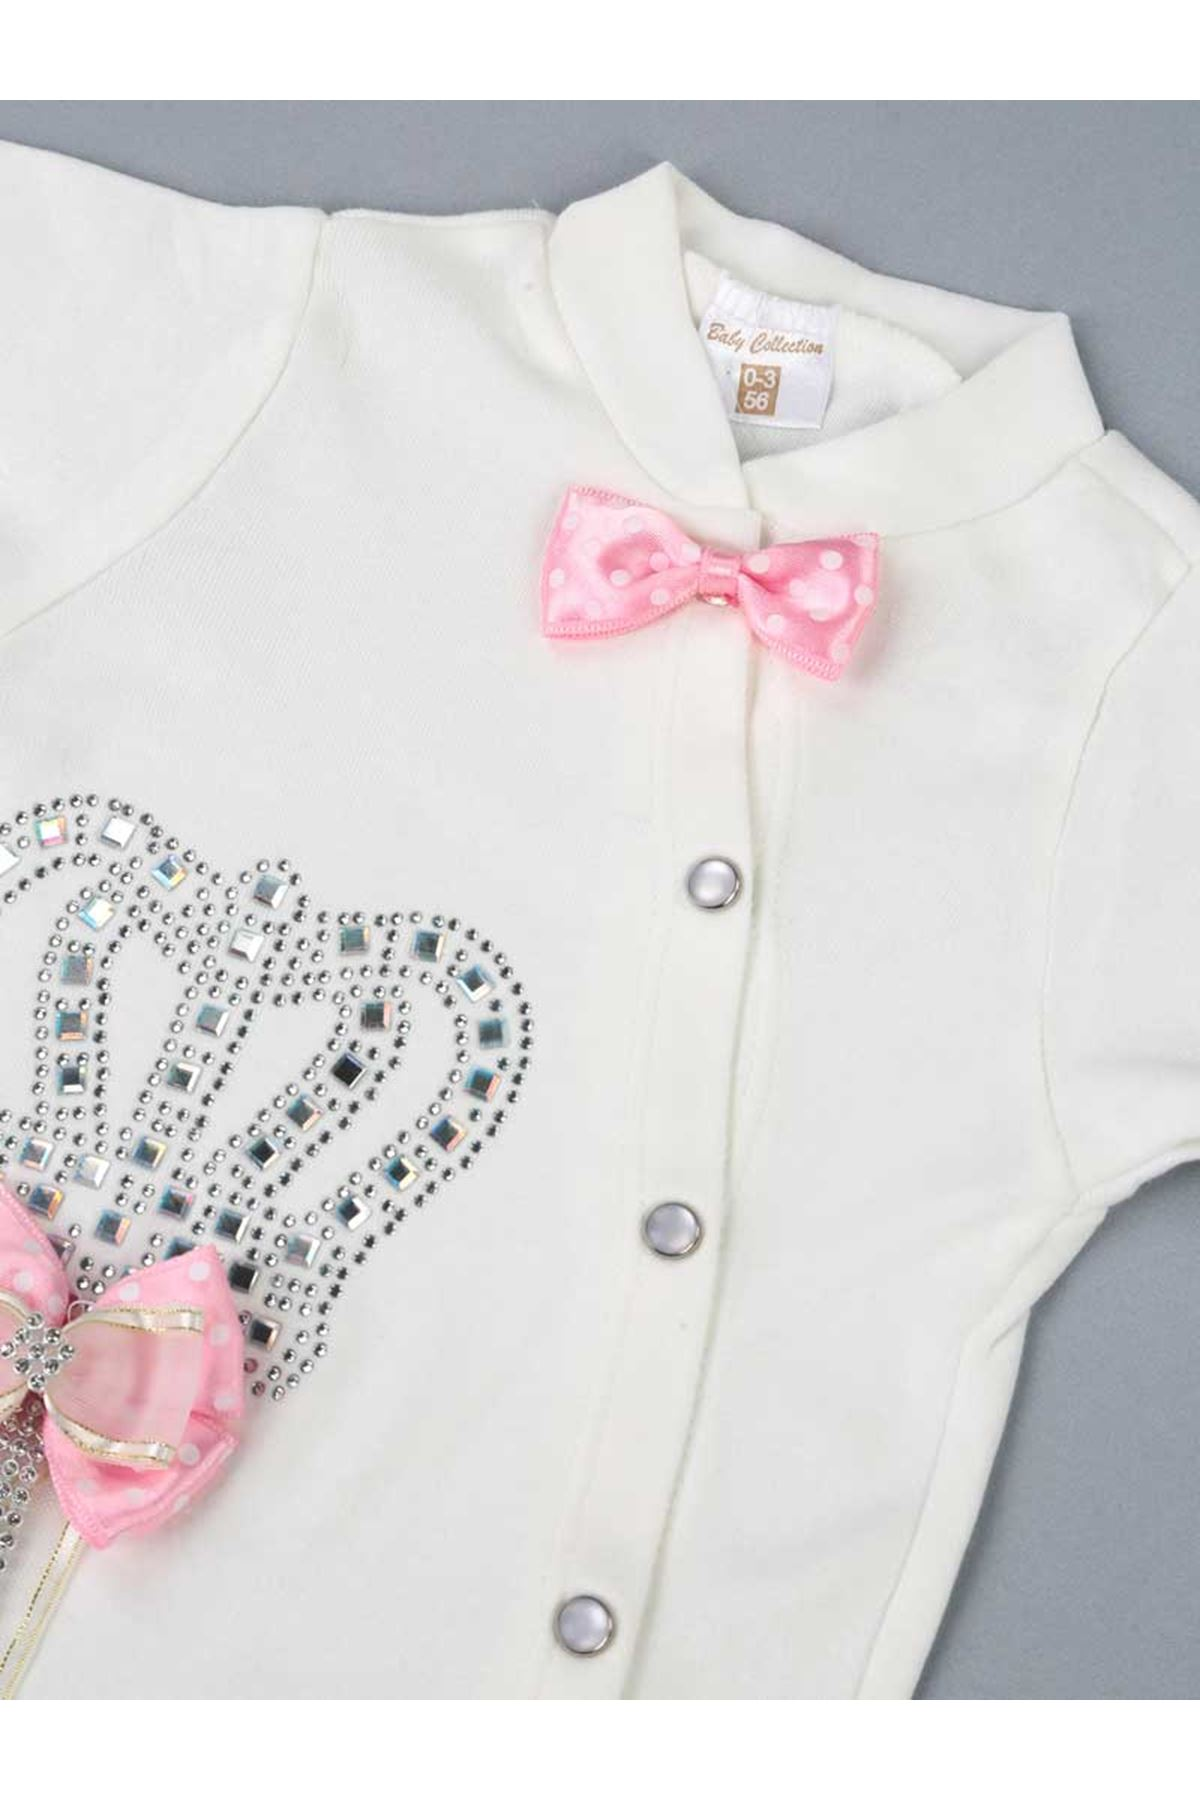 Baby rompers girls boys newborn clothes 3 Piece set cotton soft antiallergic fabric for newborn babies of kinds clothing models